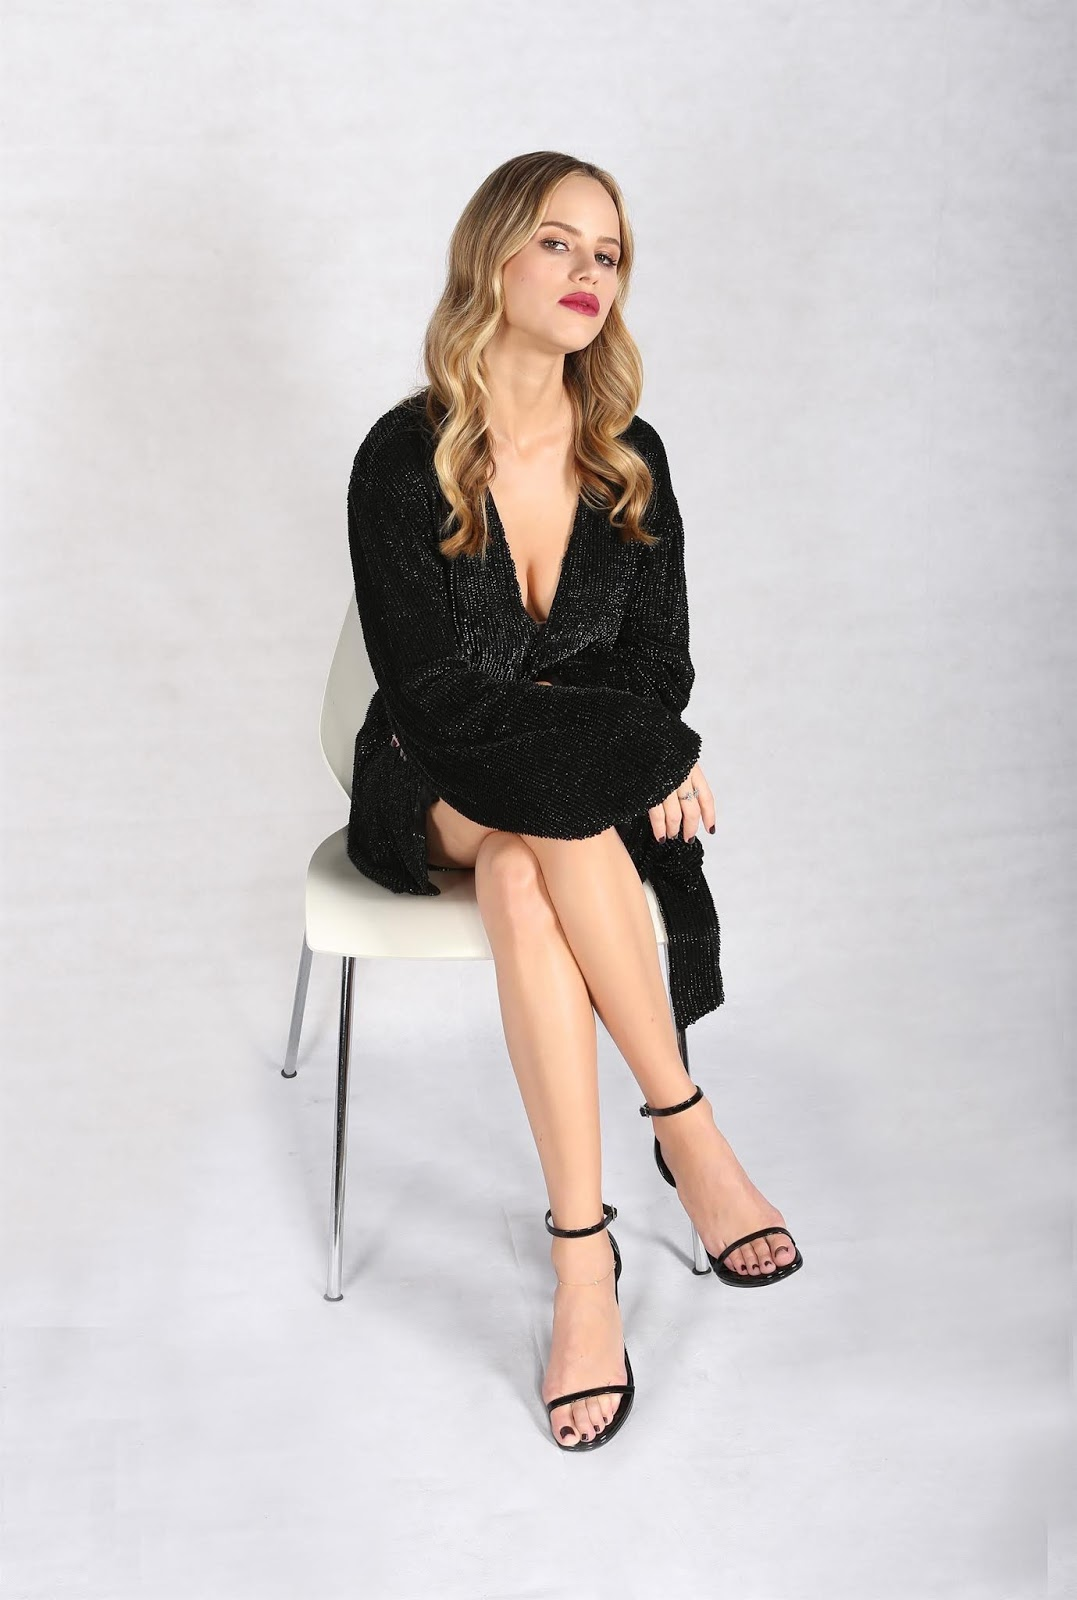 Halston Sage - Portraits for Filming In Italy - January 2019